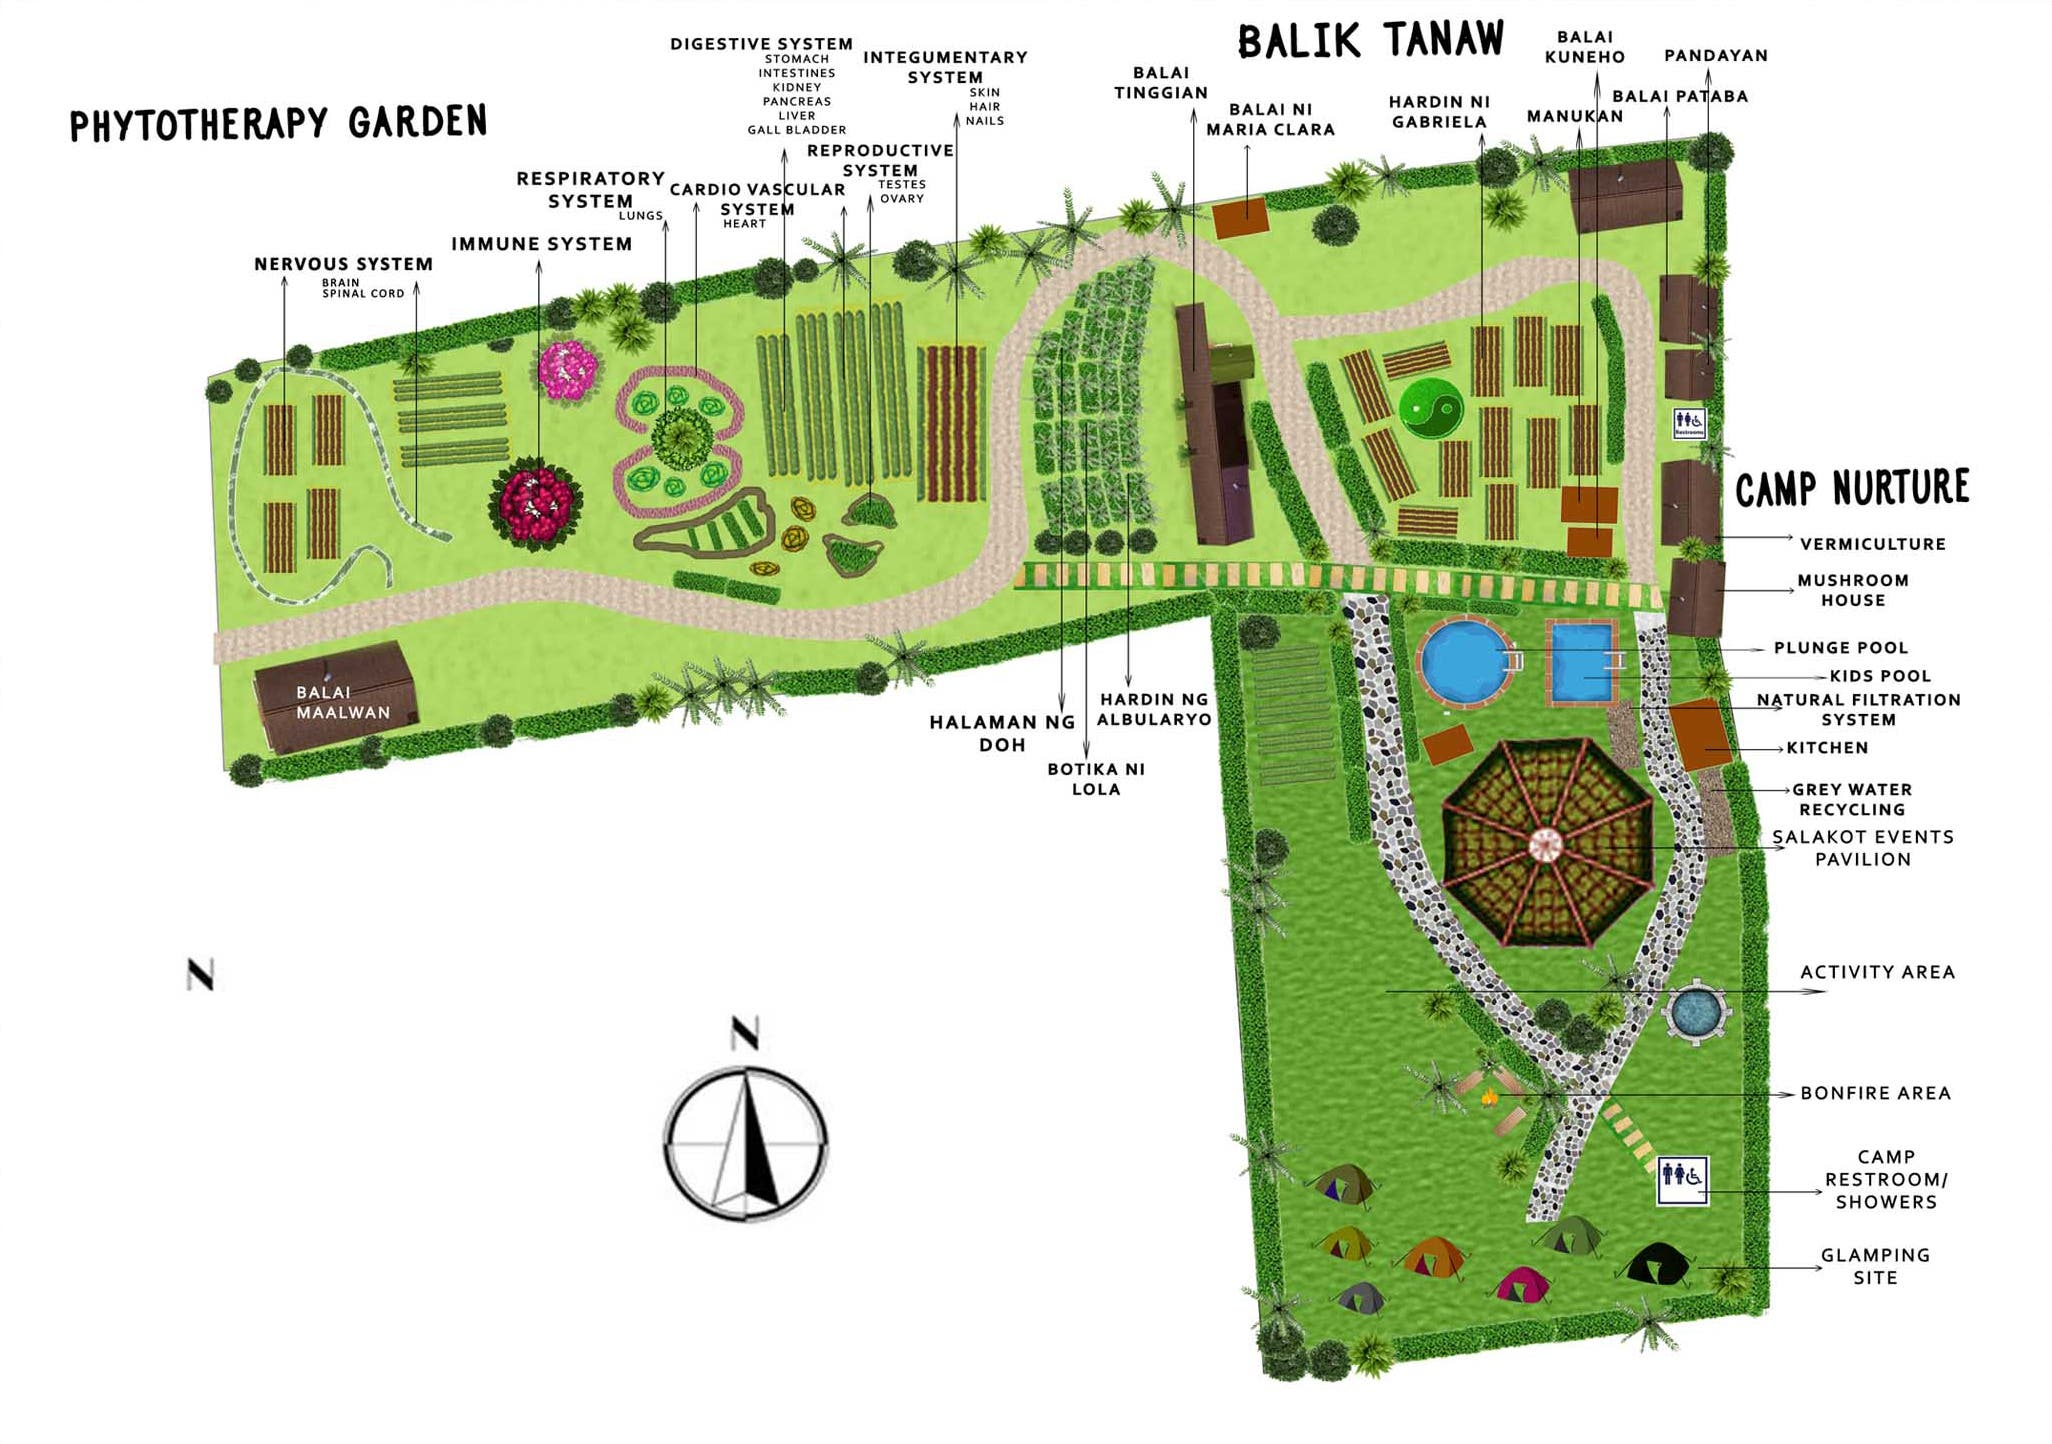 farm-site-map_flyers-1